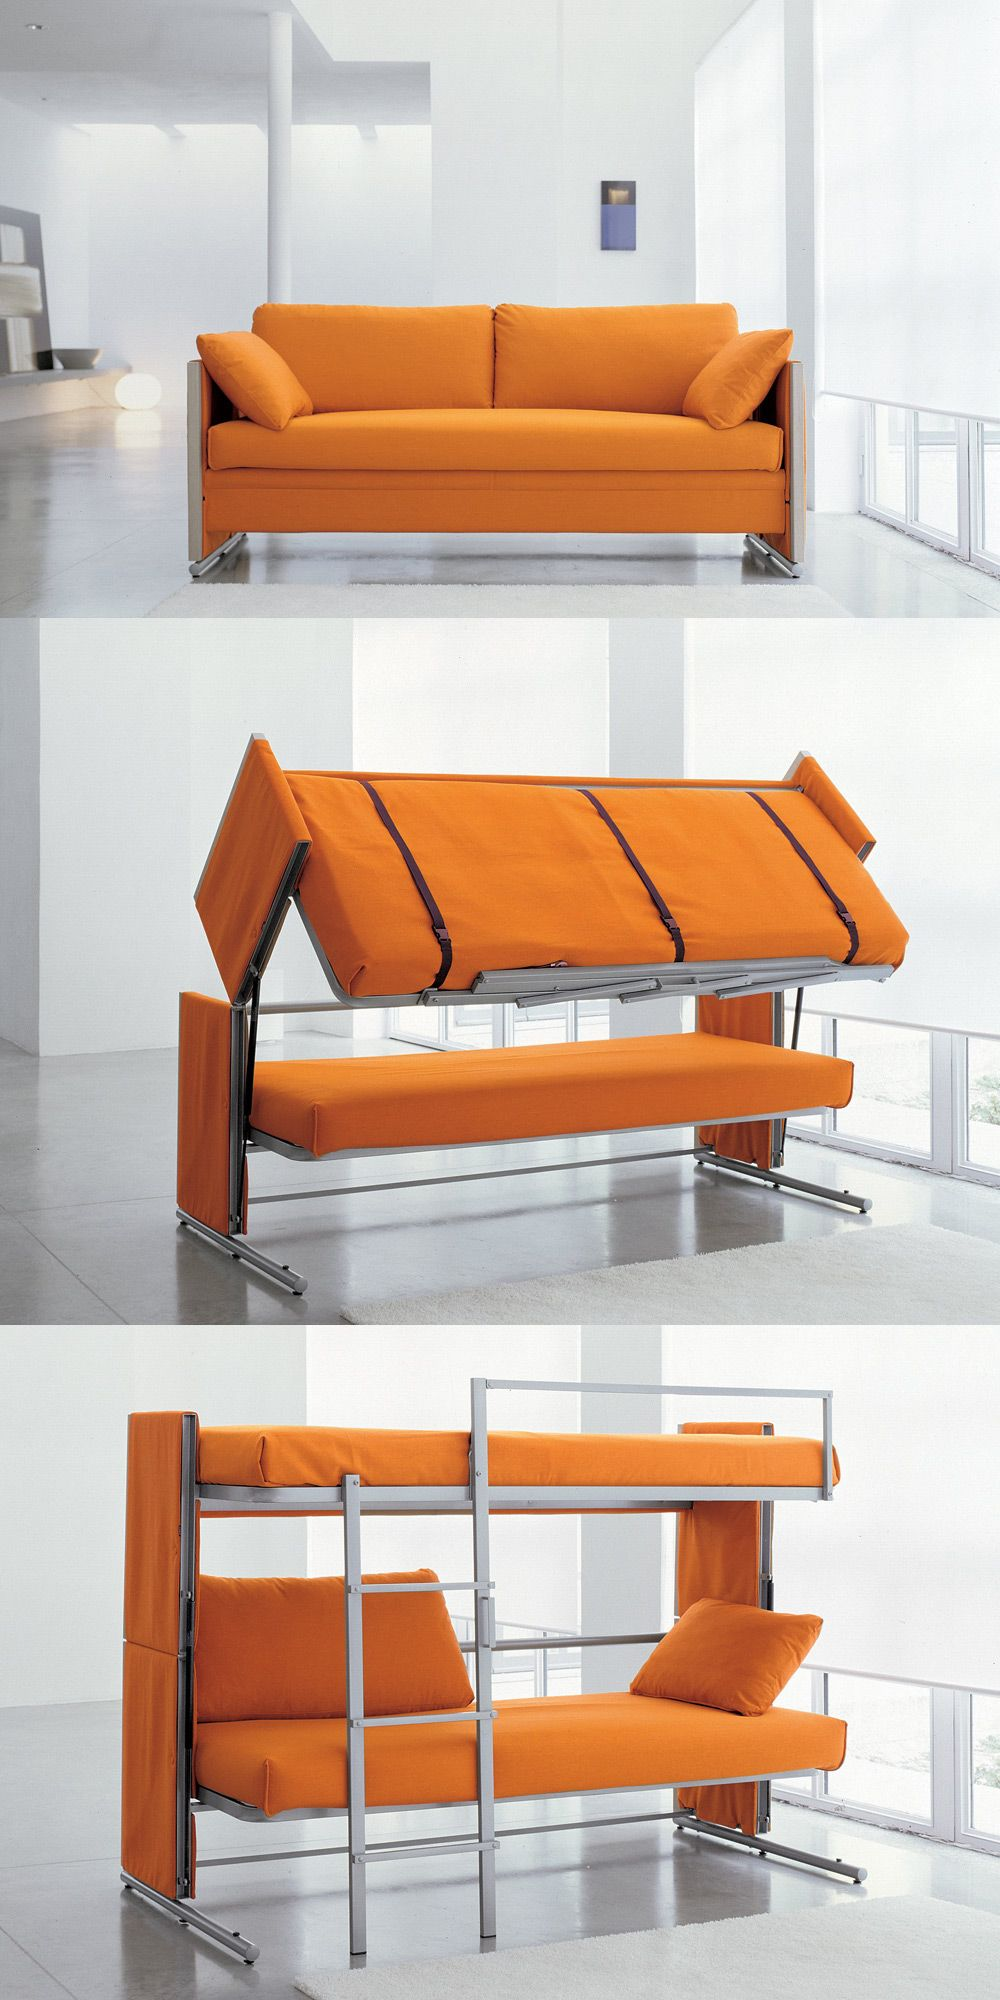 amazing cool sofa. Double Beds Awesome Inventions 2013  Cool For Kids To Make At Home Bedroom